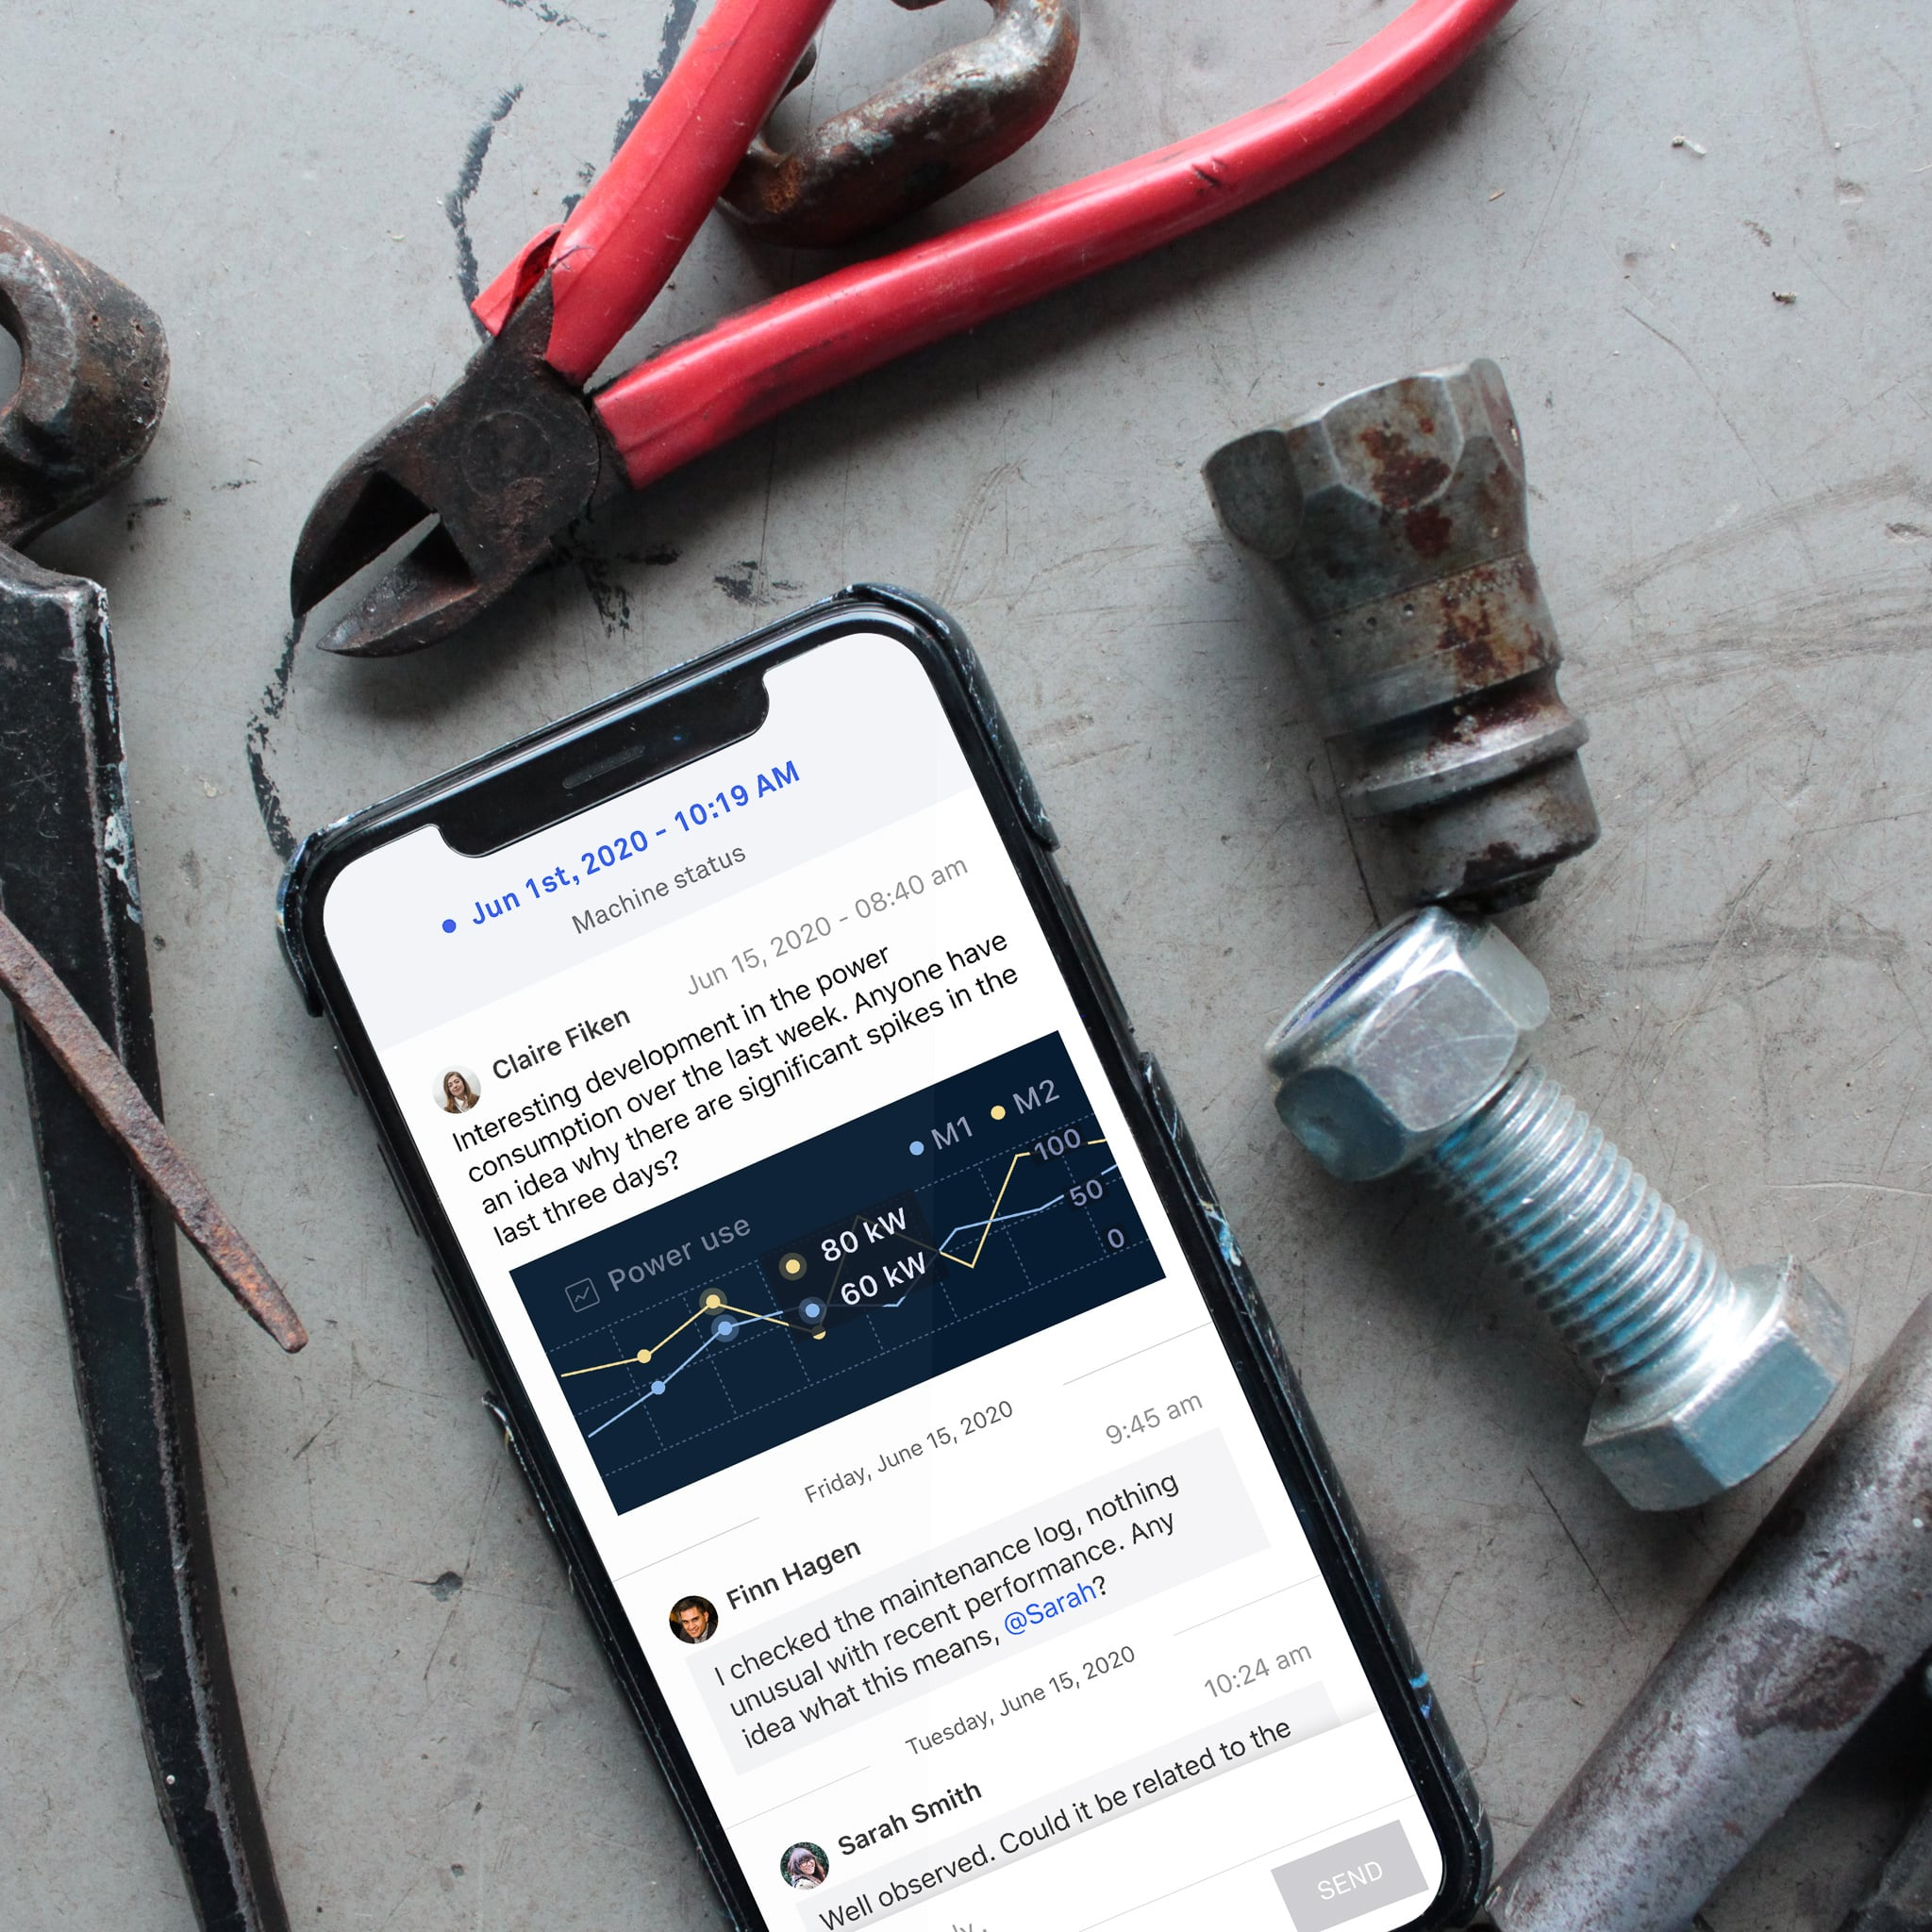 Clarify app interface displaying comments on an iPhone laying beside tools at unpolished industrial desk